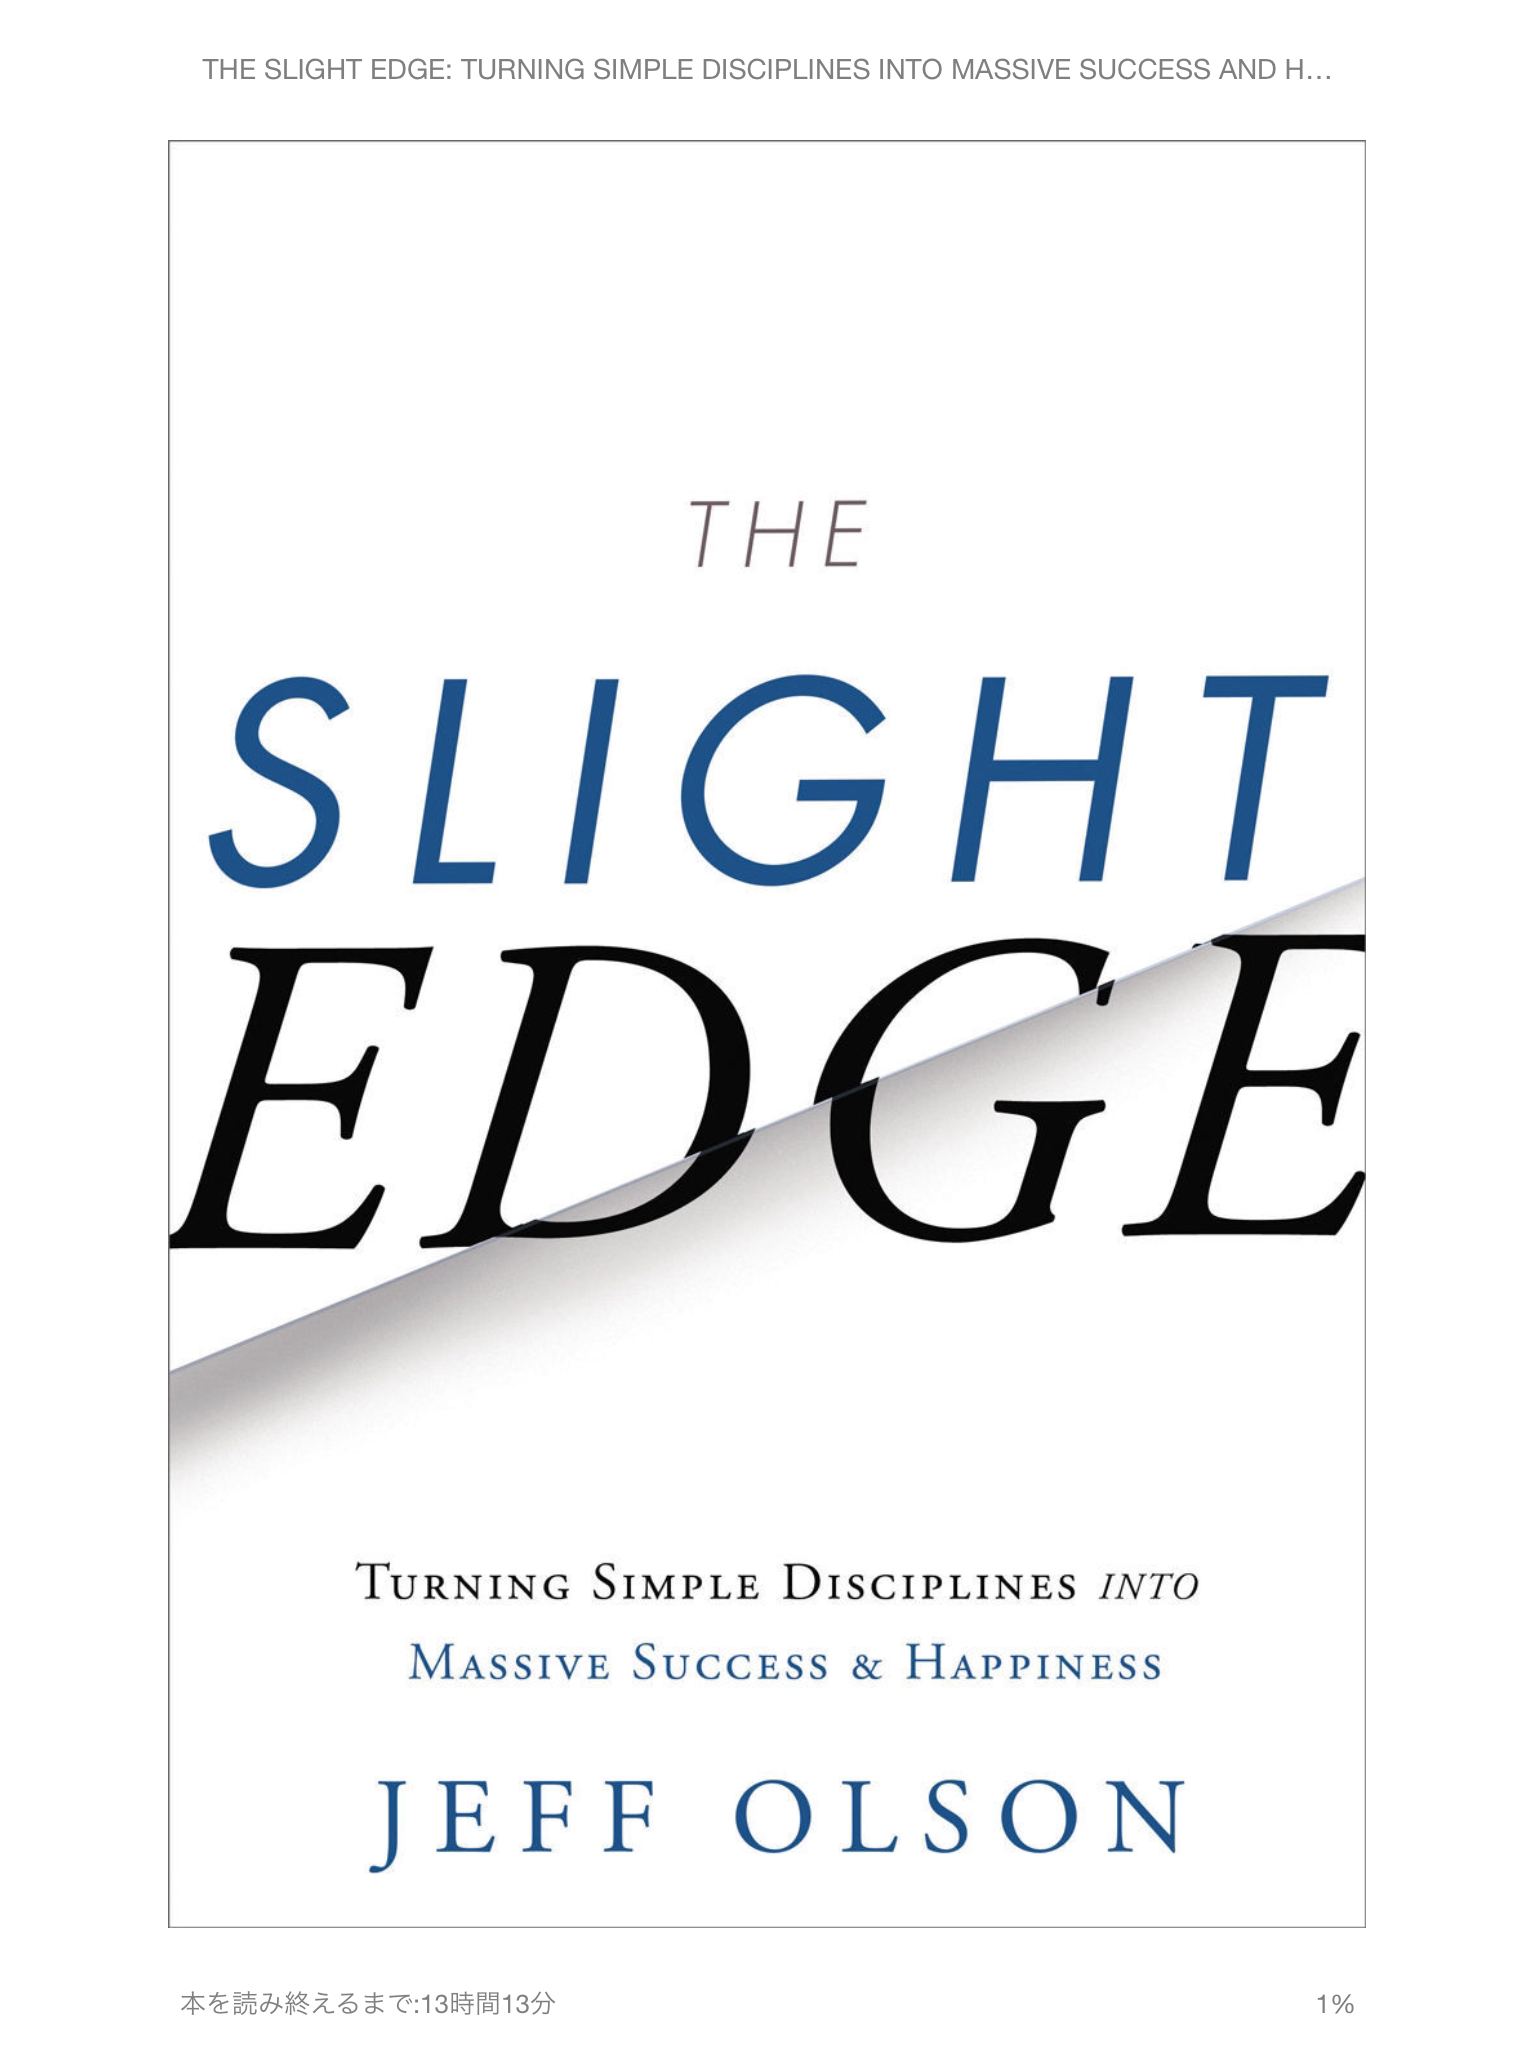 読書感想「The Slight Edge」